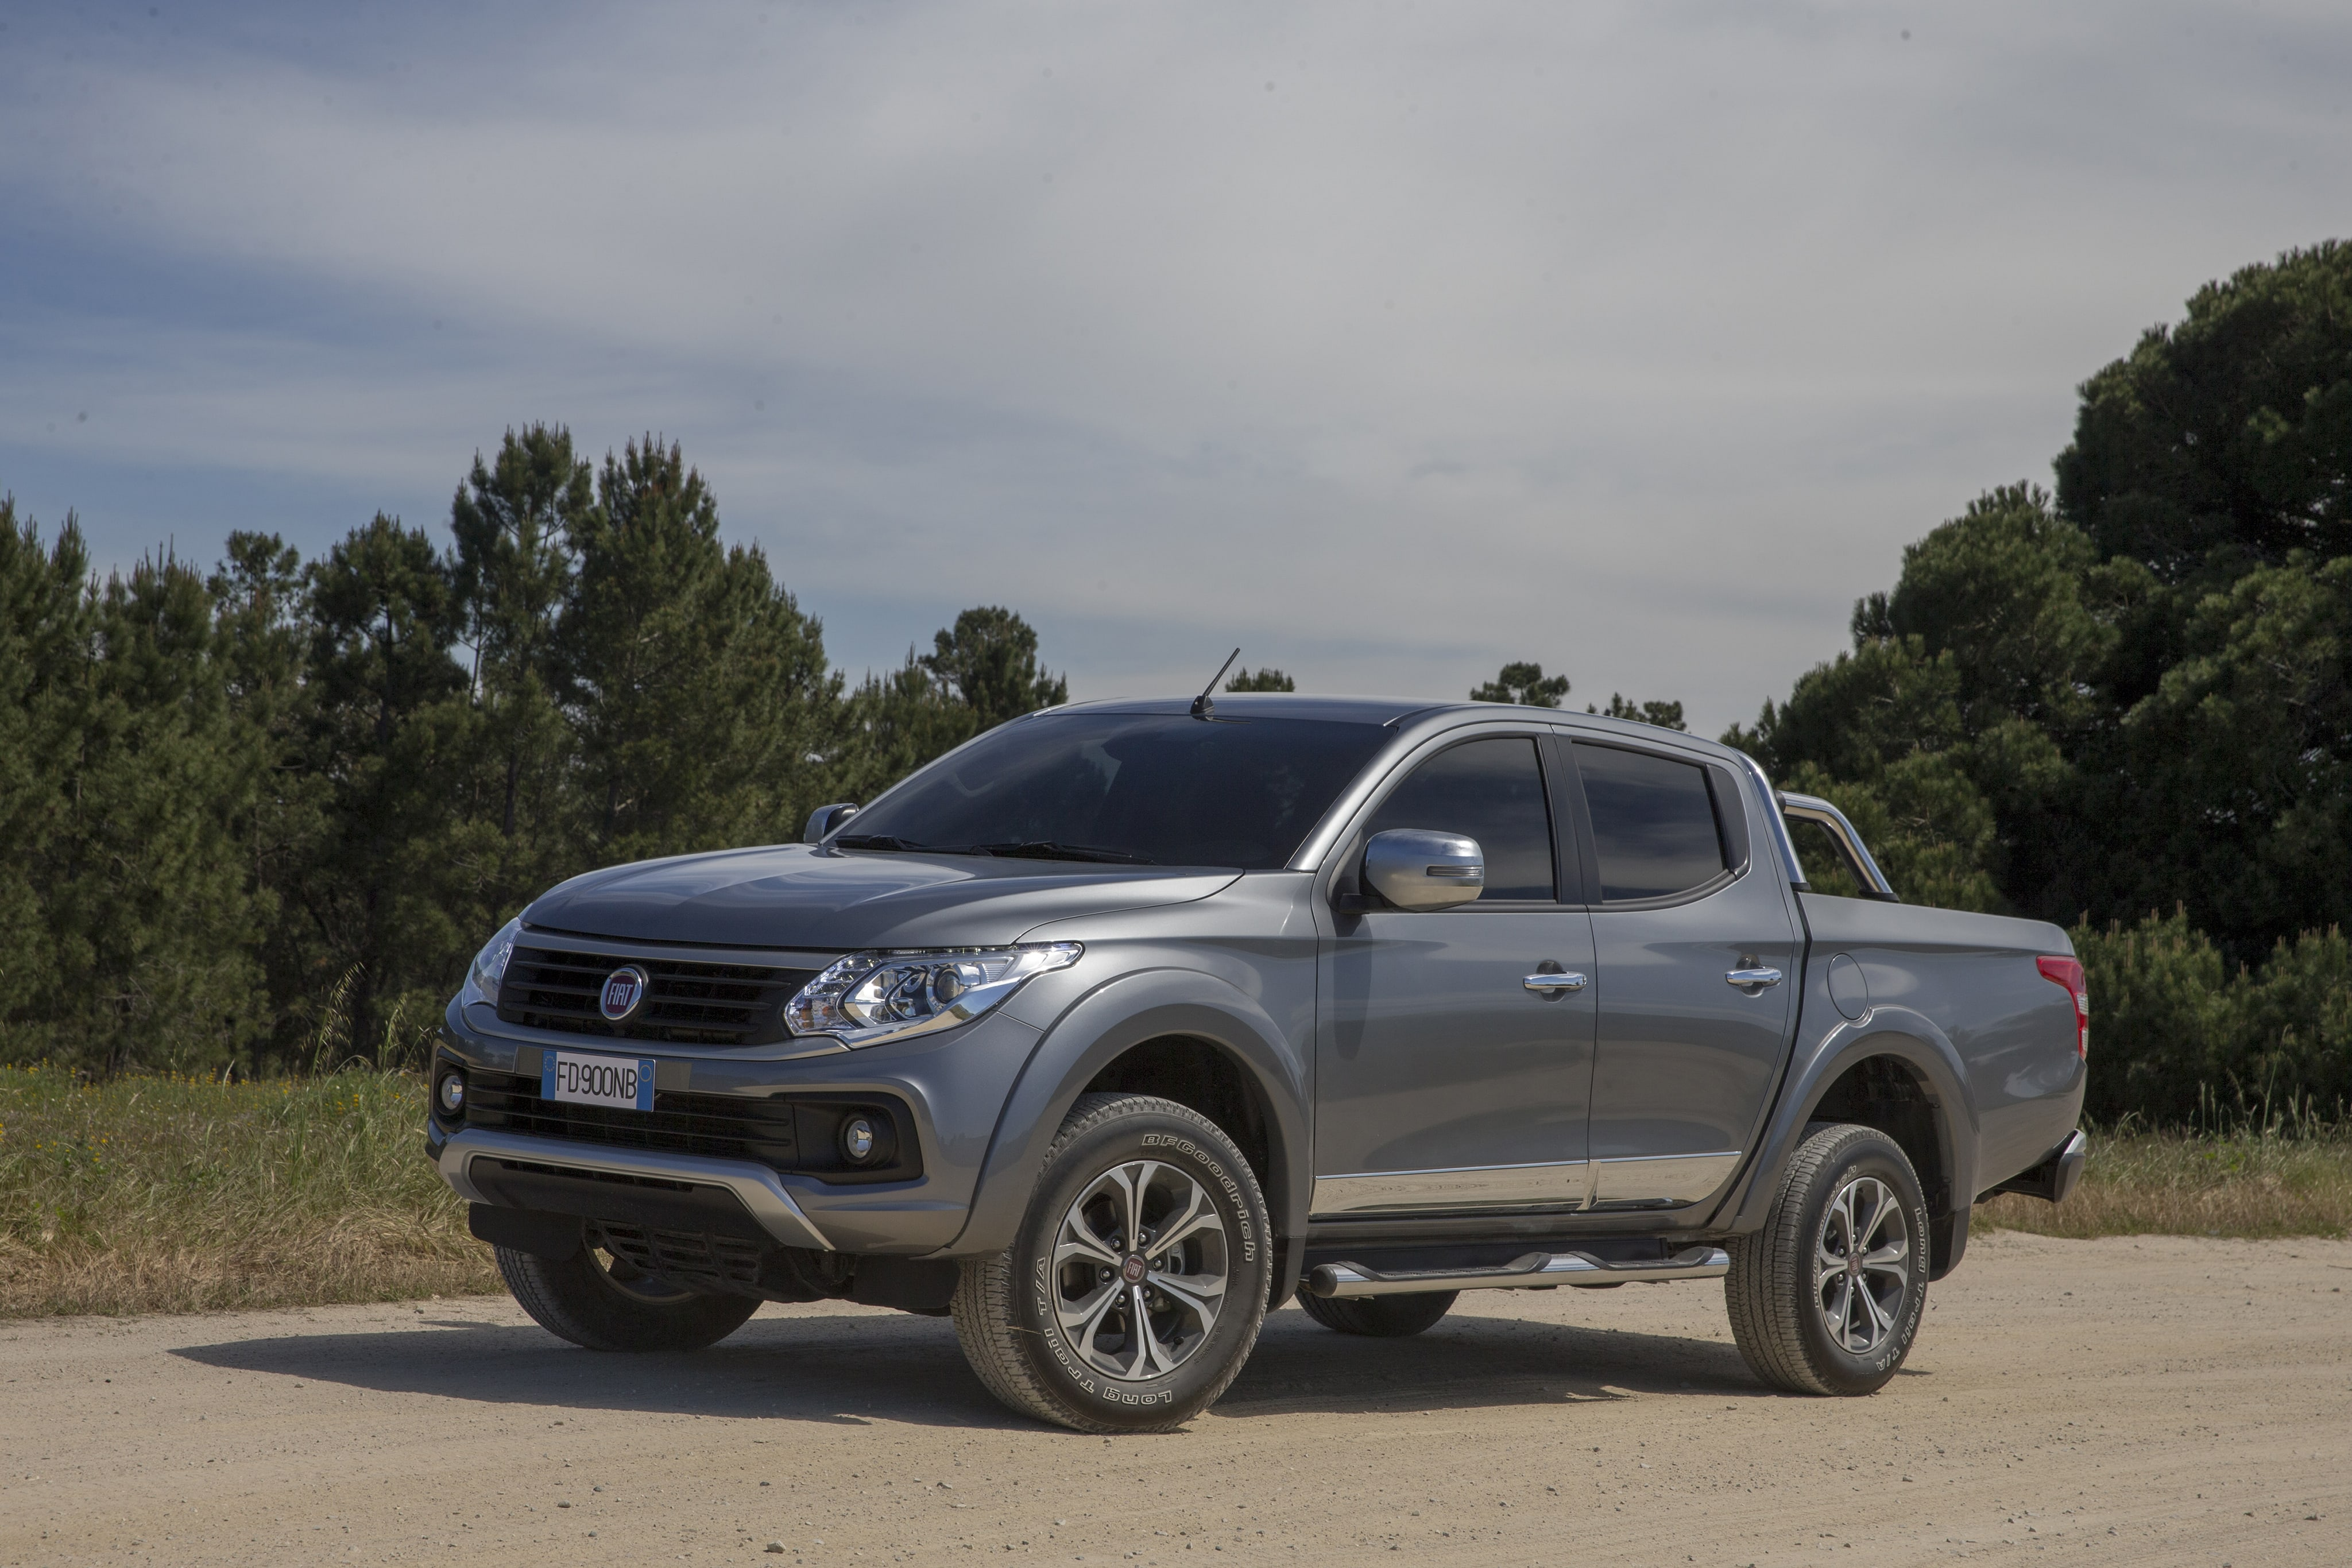 Fiat Fullback Full hd wallpapers